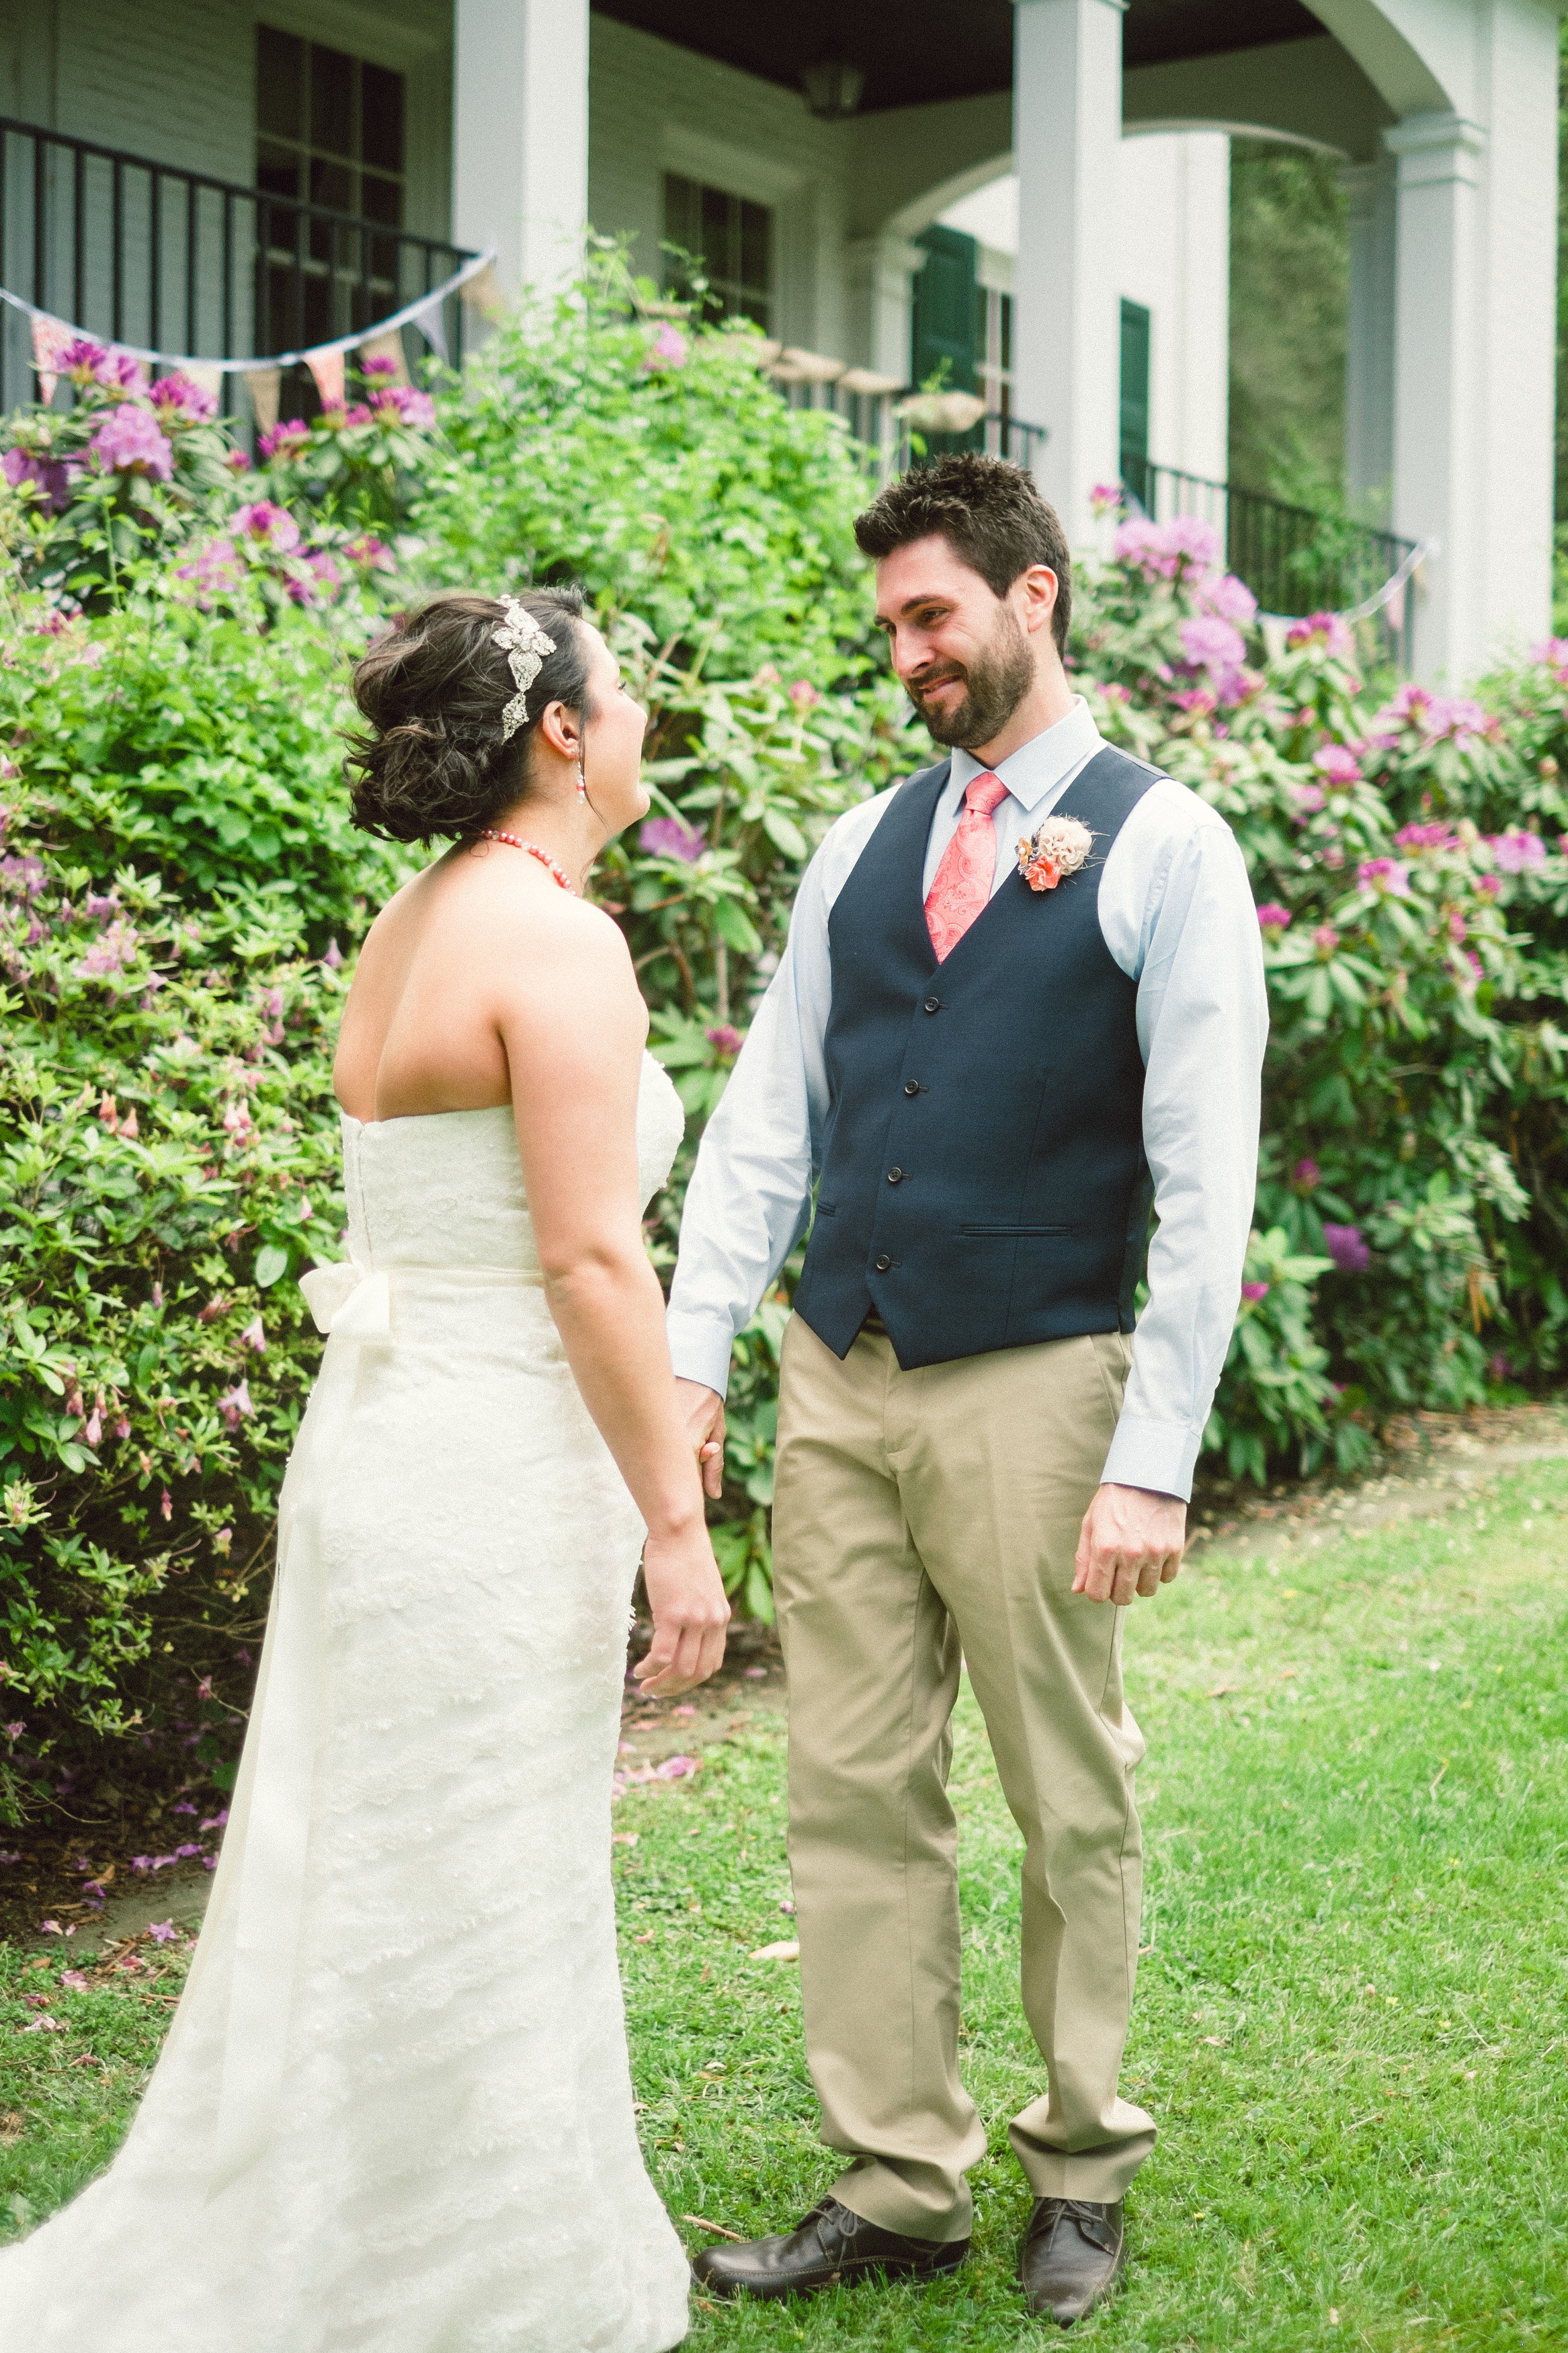 PennsylvaniaWeddingPhotographer-82.jpg